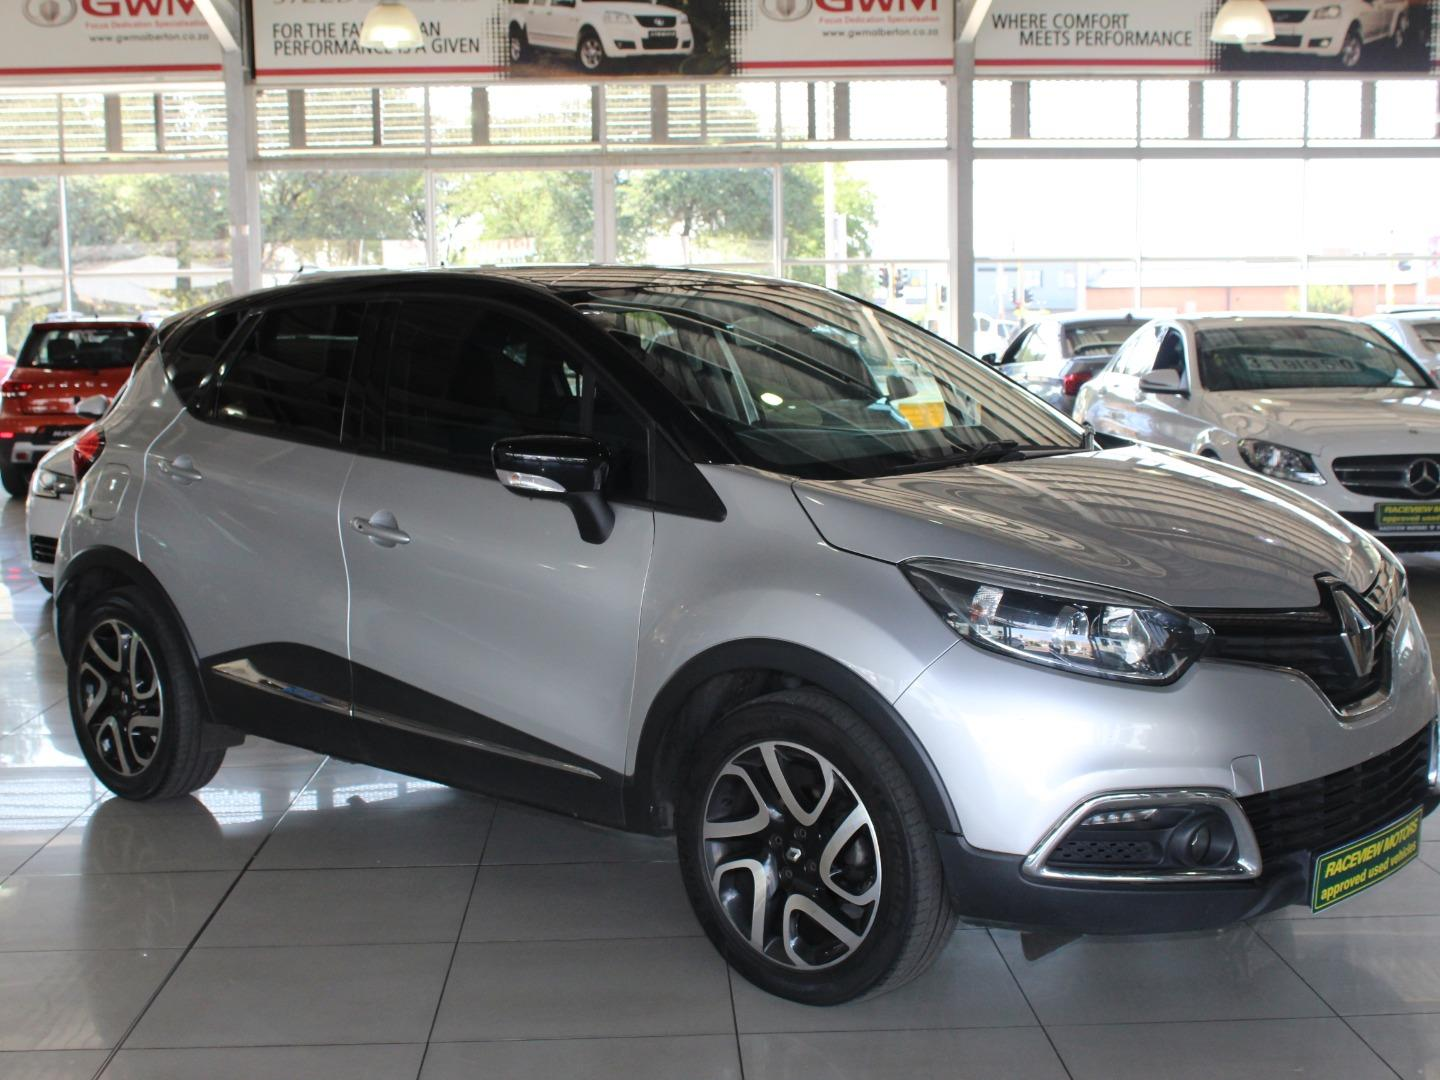 2015 Renault Captur 66kW Turbo Dynamique- Picture 1